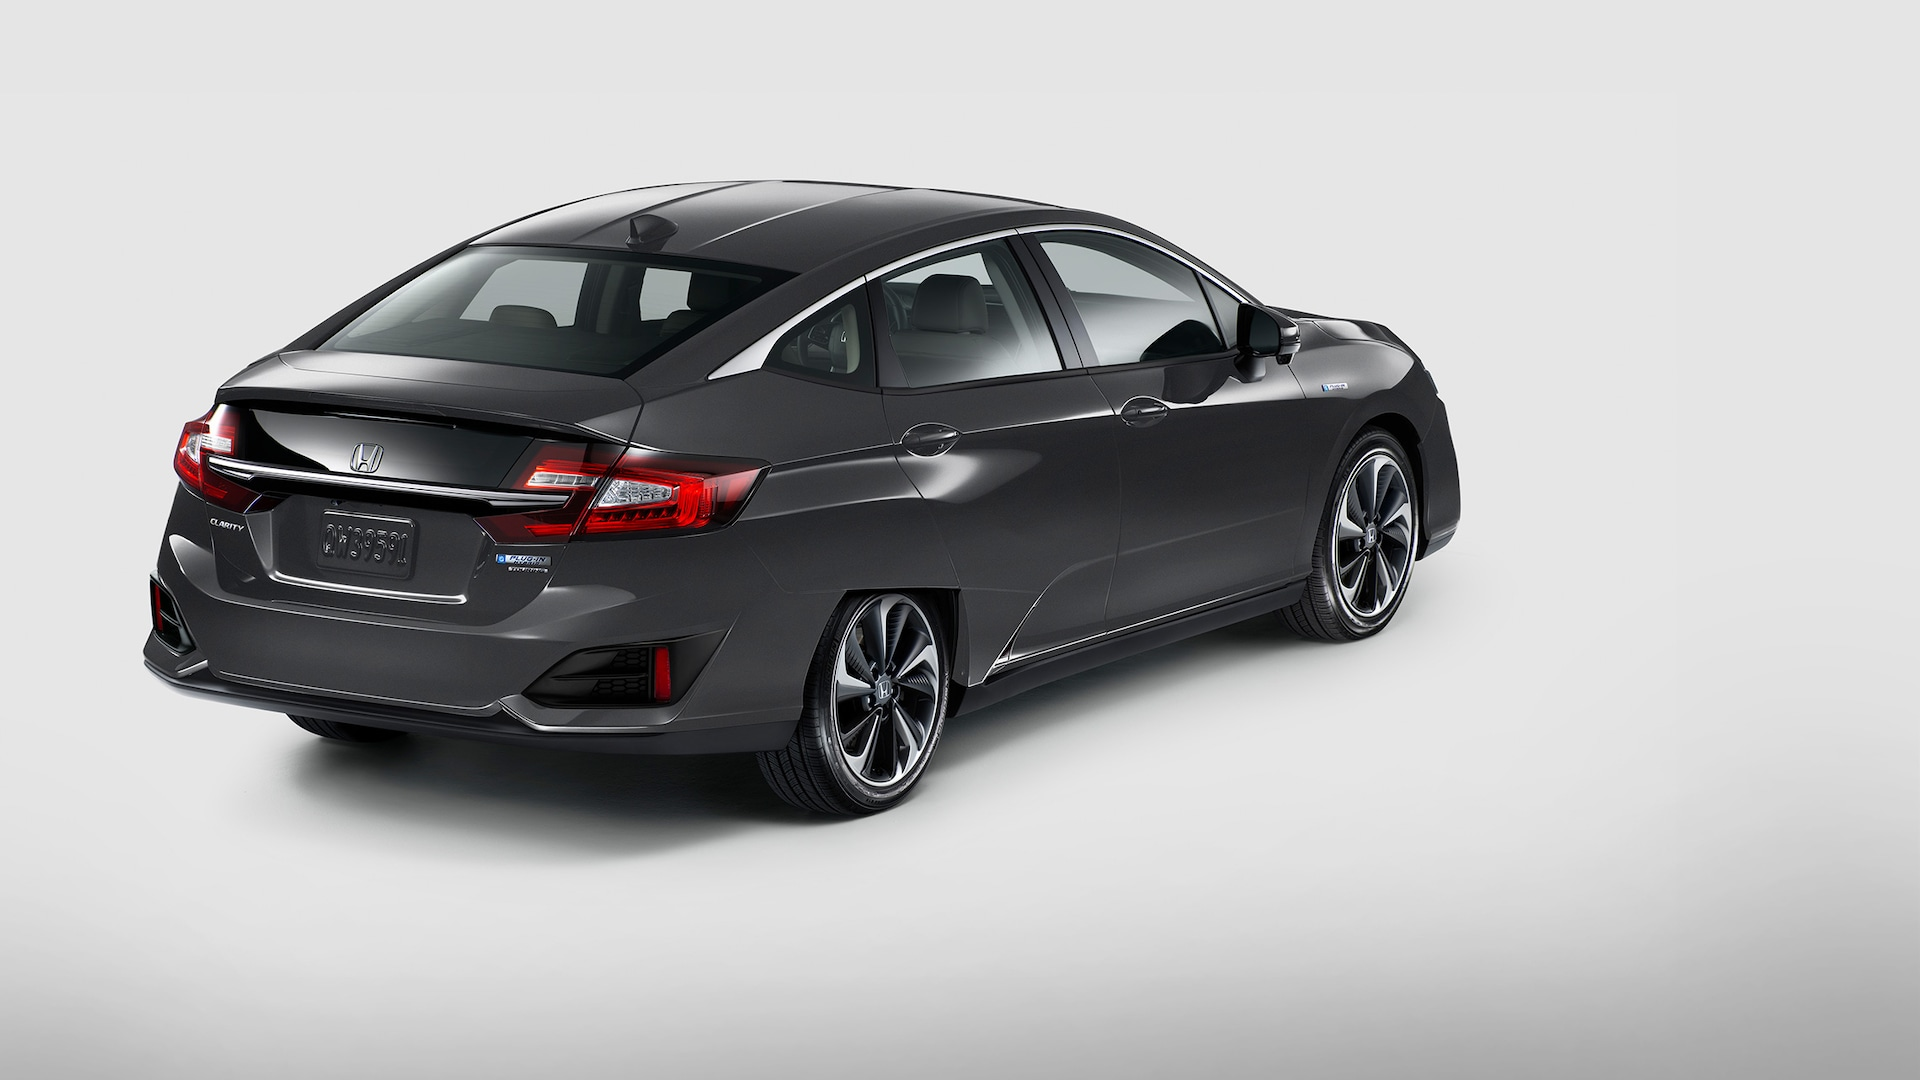 Rear view of 2021 Clarity Plug-In Hybrid in Modern Steel Metallic.